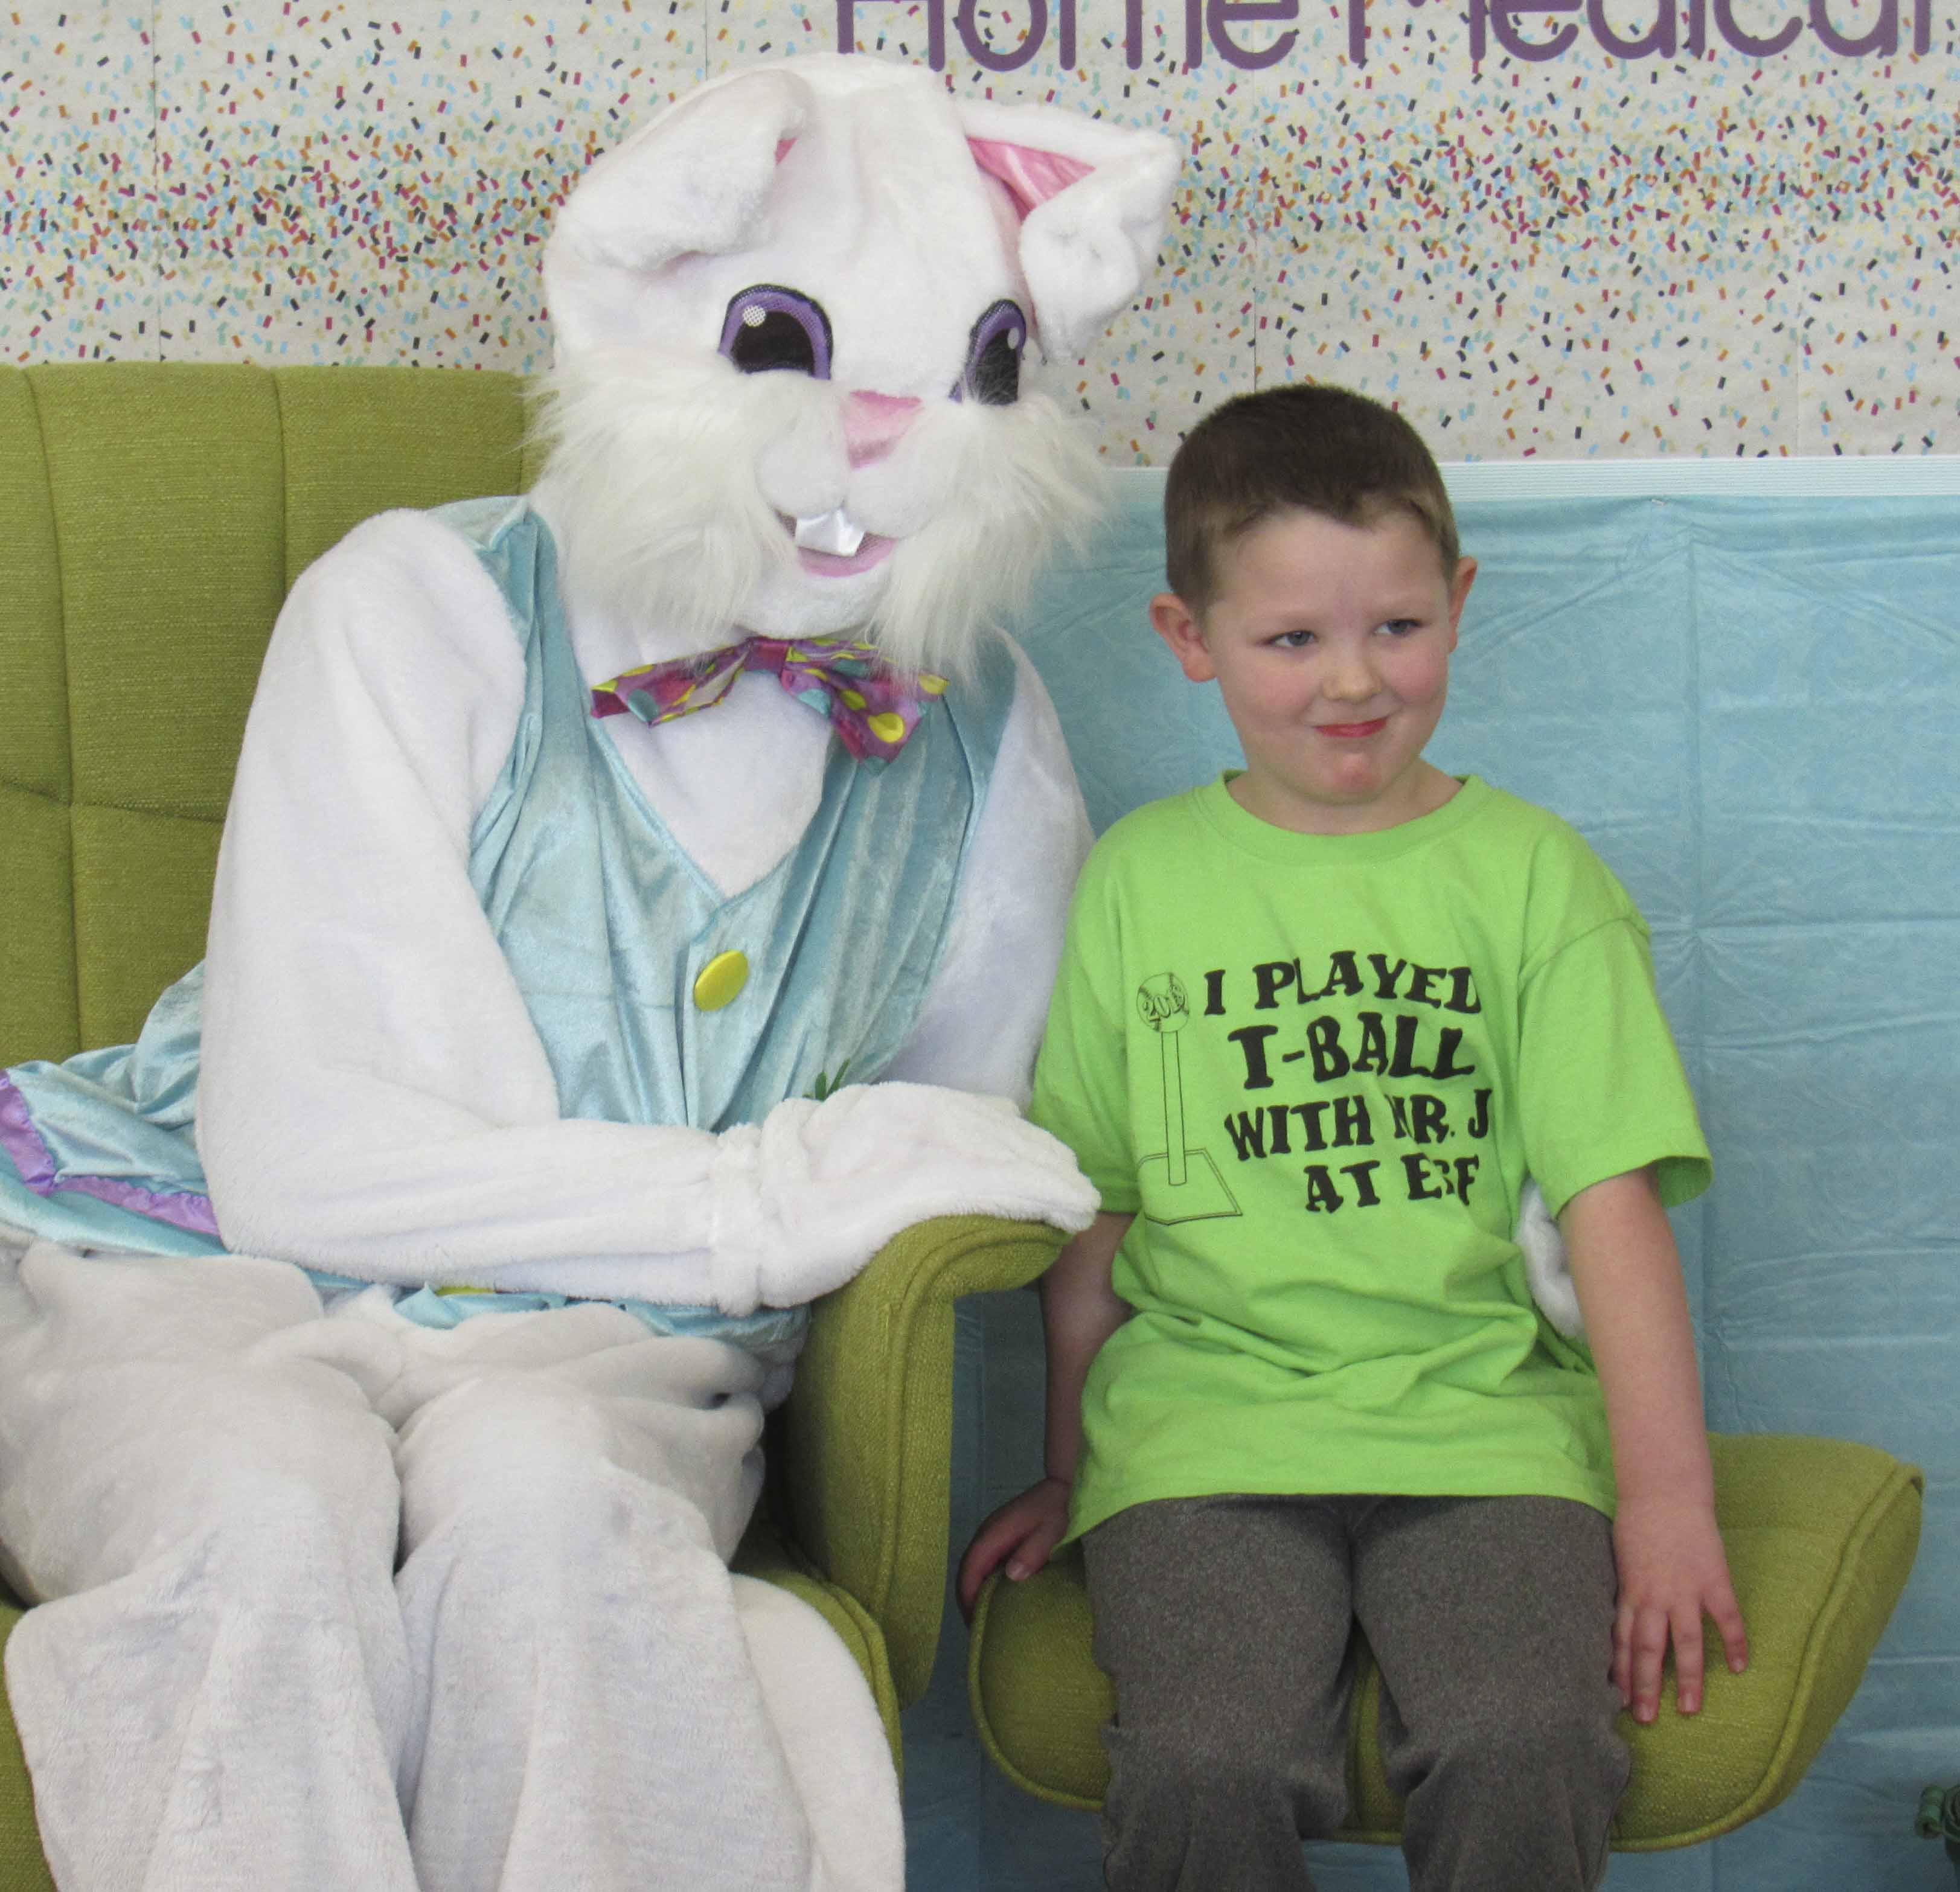 Four-year-old Beckett Dietz, son of Erin and Bob Dietz, enjoyed his visit with the Easter Bunny March 29 at Advantage Home Medical in Monticello. Kids got their picture taken and took home a candy treat. (Photos by Kim Brooks)